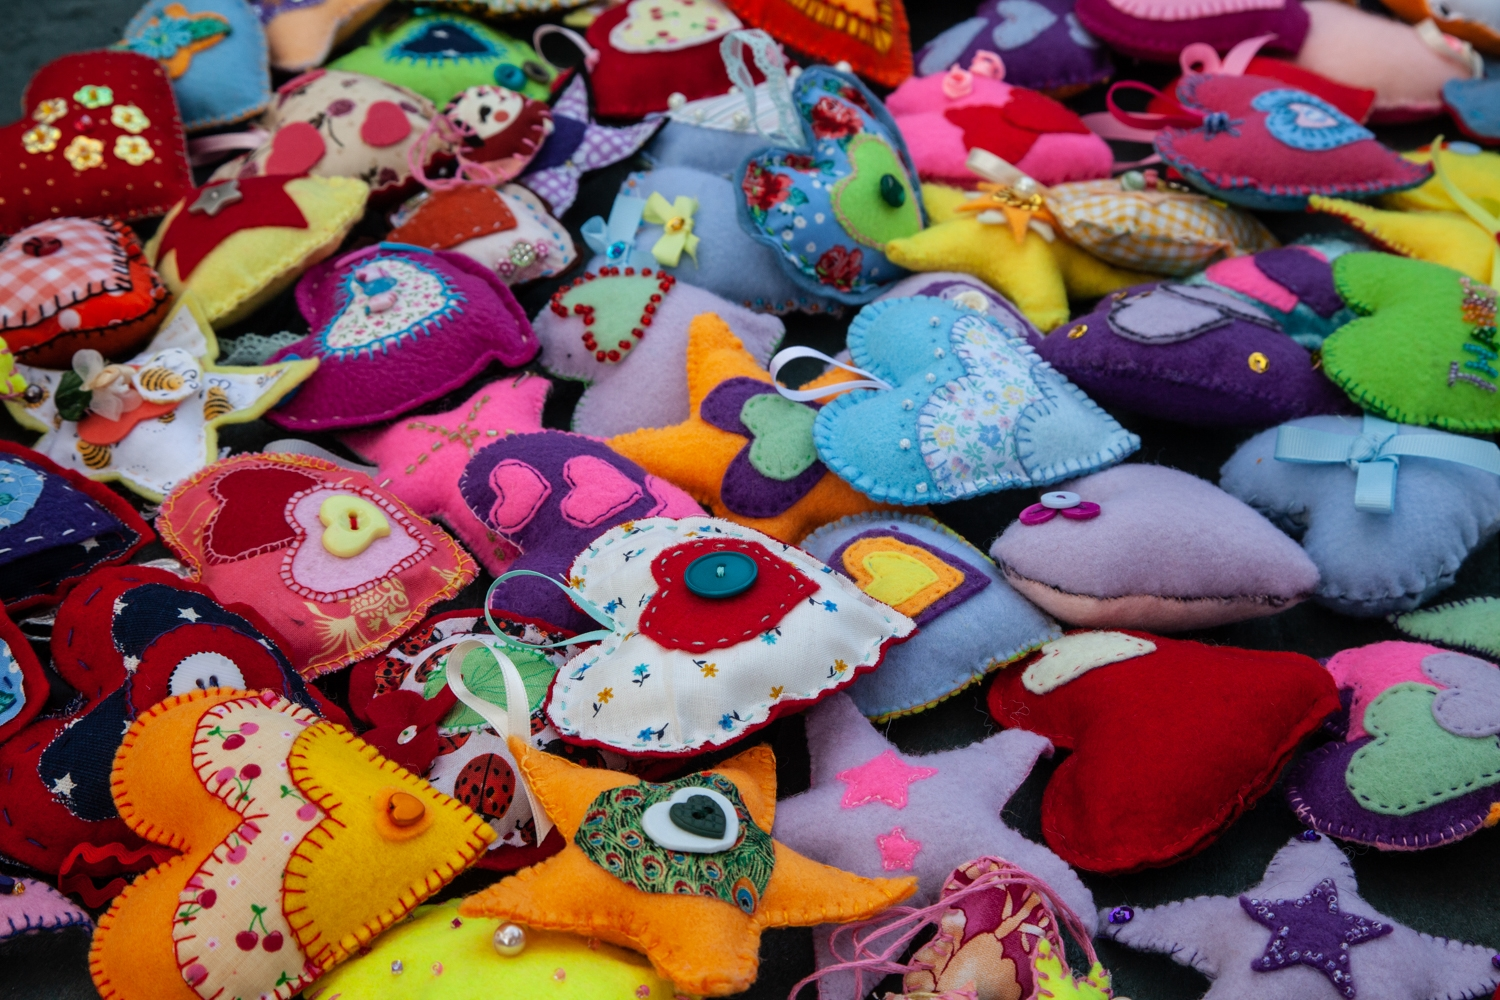 A collection of handmade felt hearts.